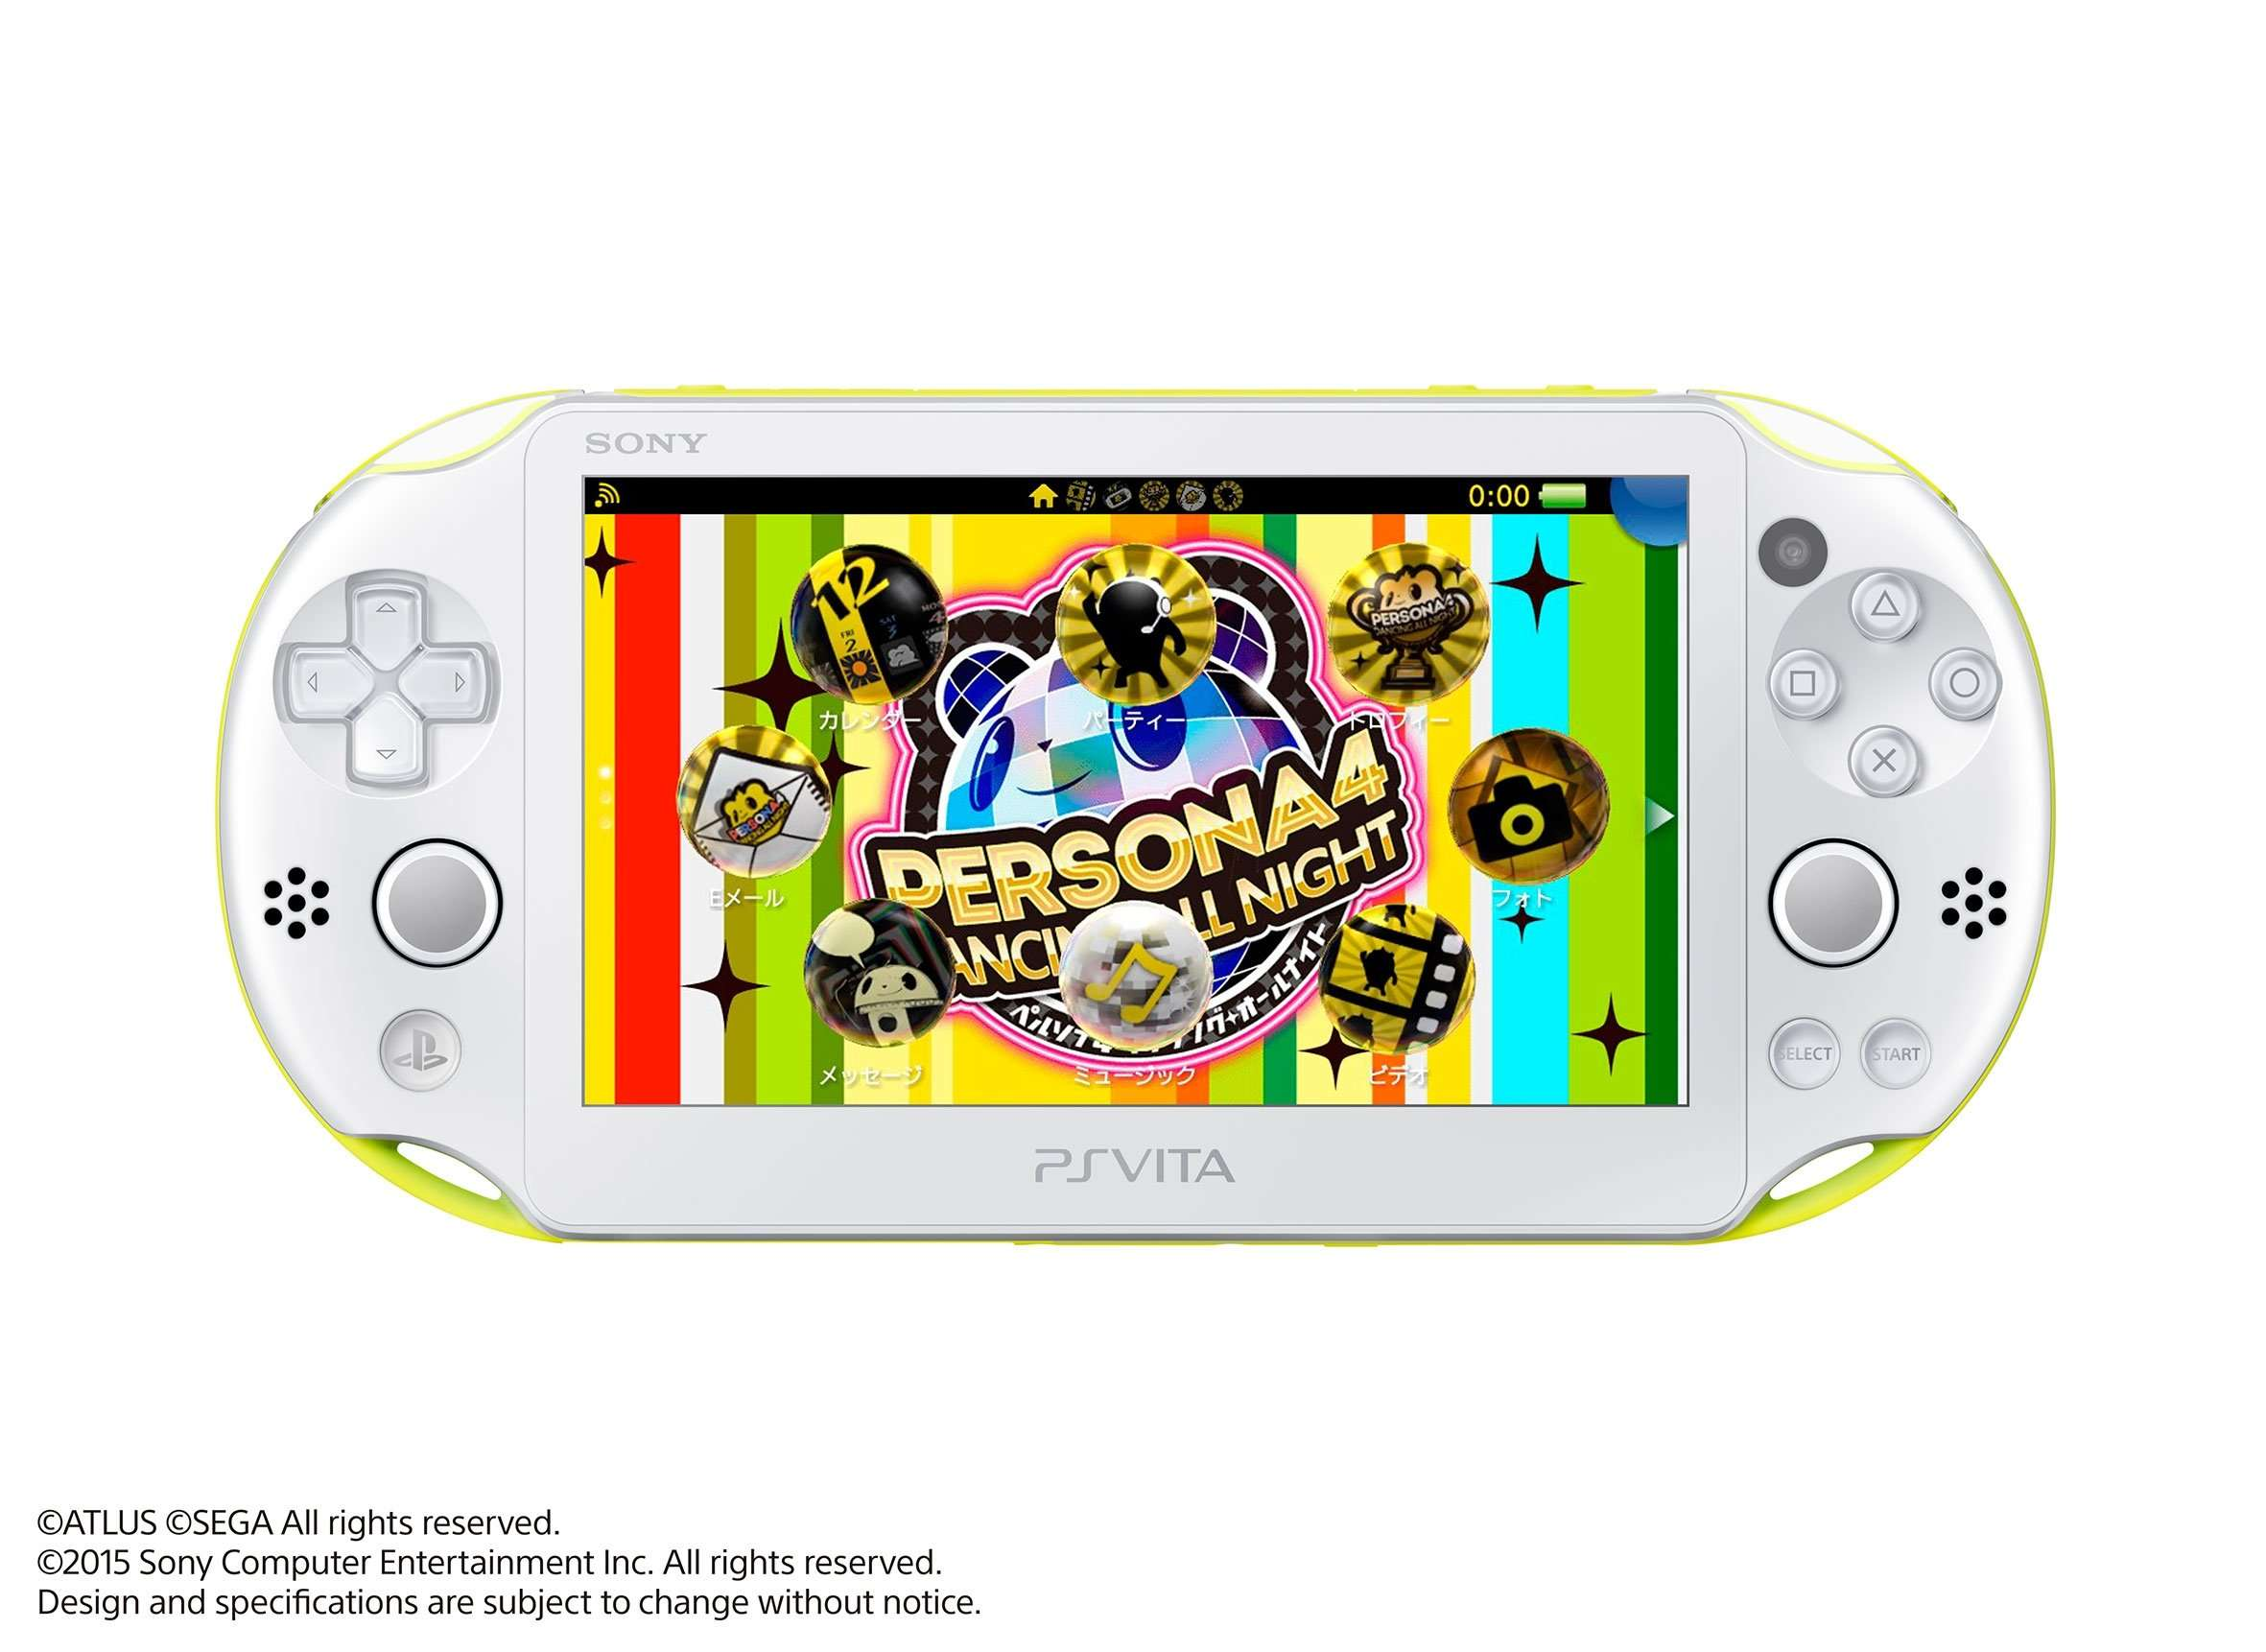 Premium Crazy Box Package limited edition PlayStation Vita.